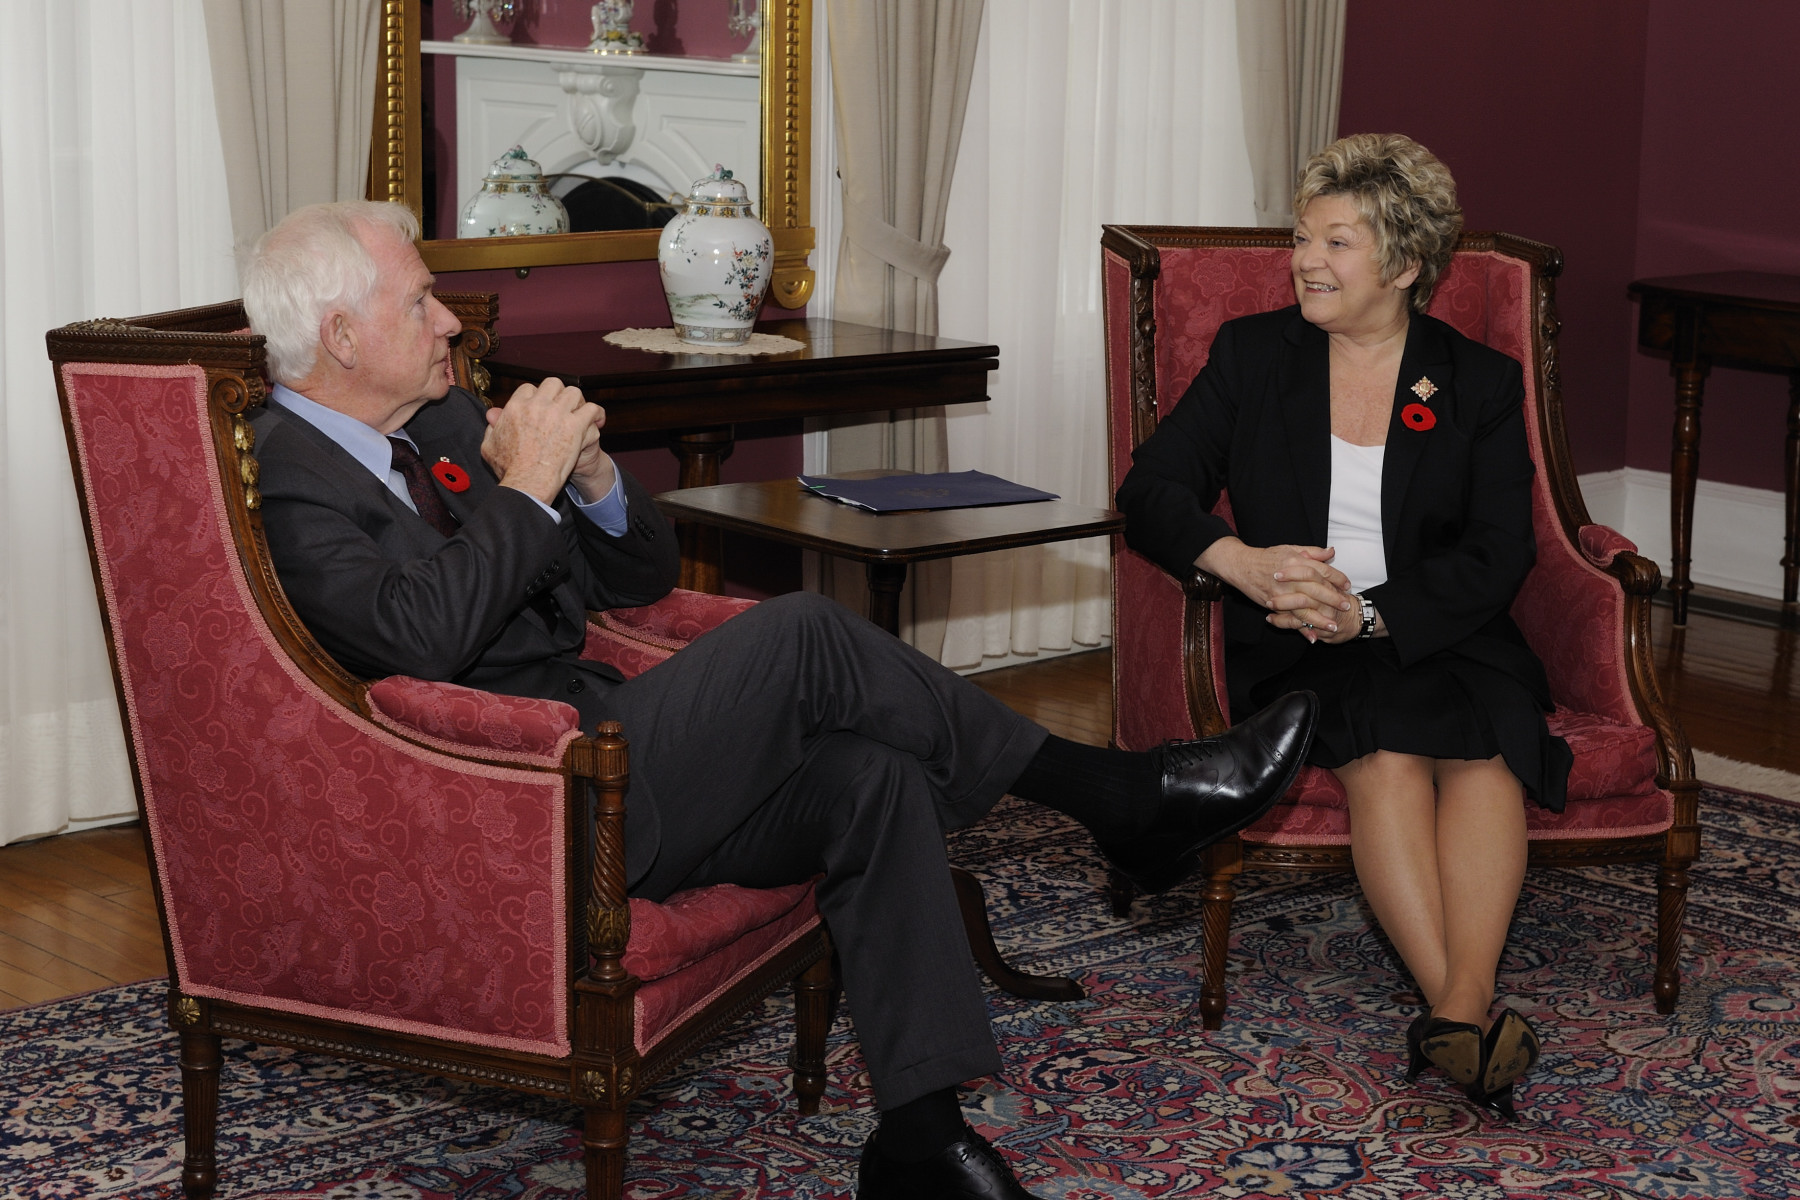 The meeting between the Governor General and the Lieutenant Governor was held at Government House in Charlottetown.